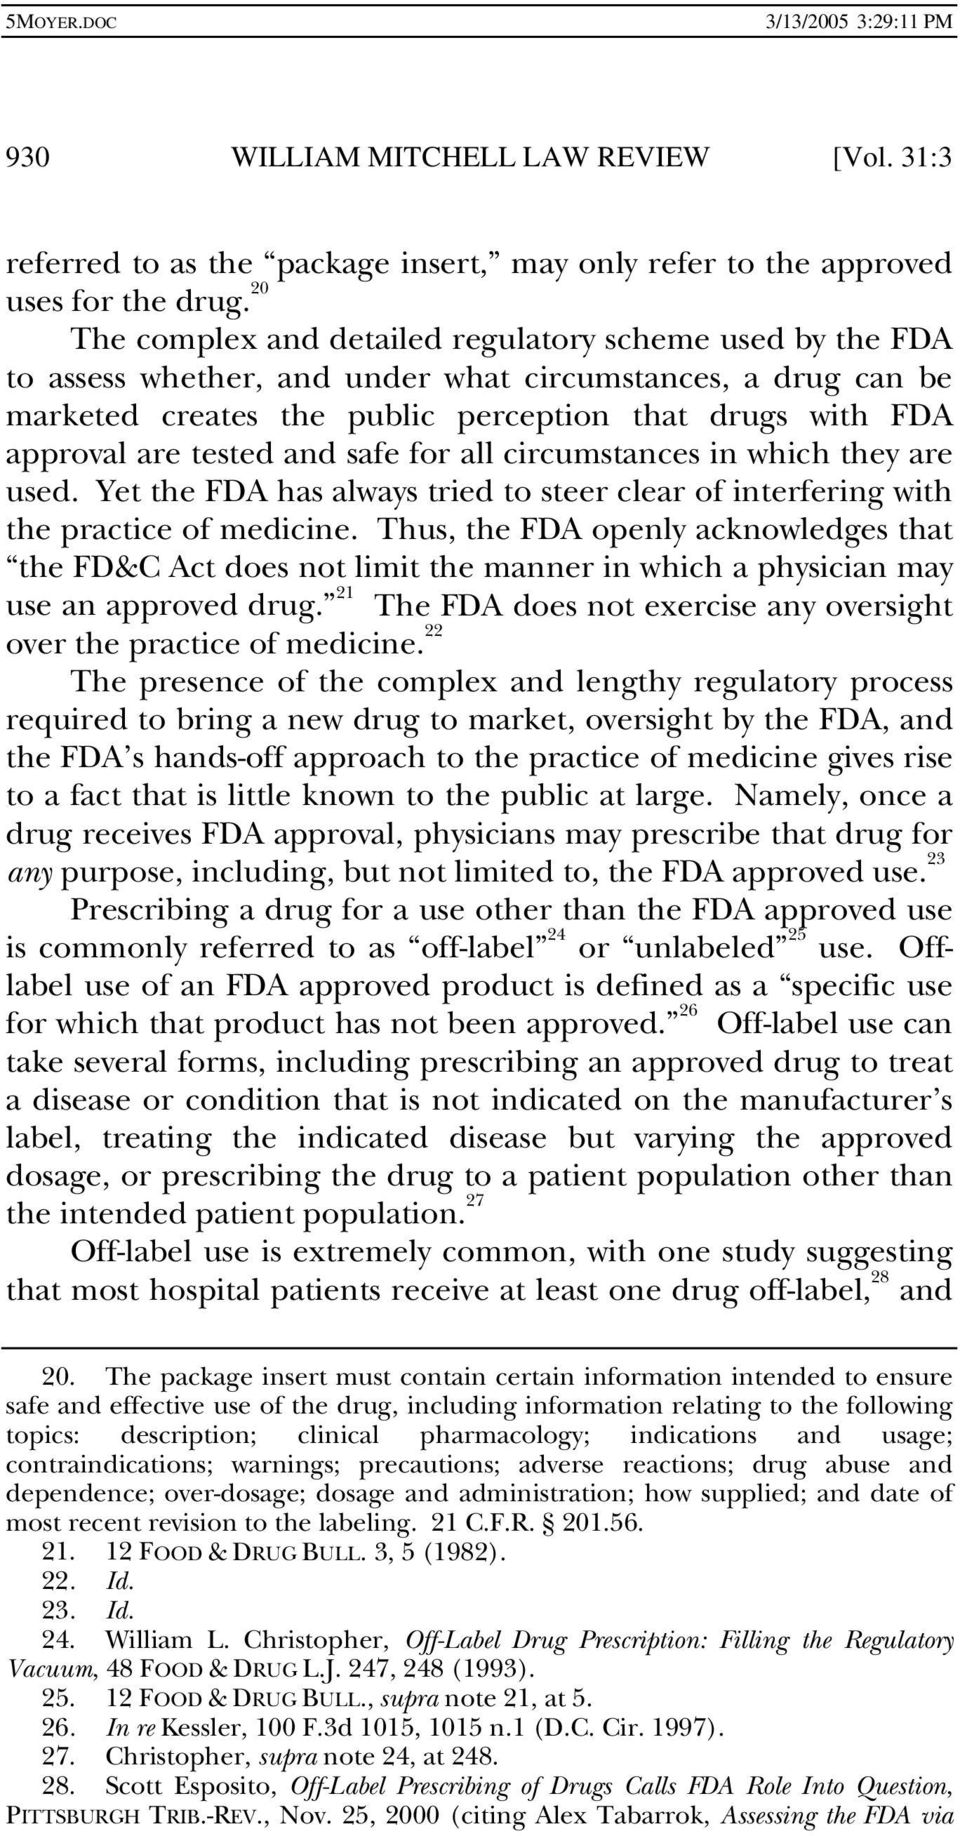 tested and safe for all circumstances in which they are used. Yet the FDA has always tried to steer clear of interfering with the practice of medicine.